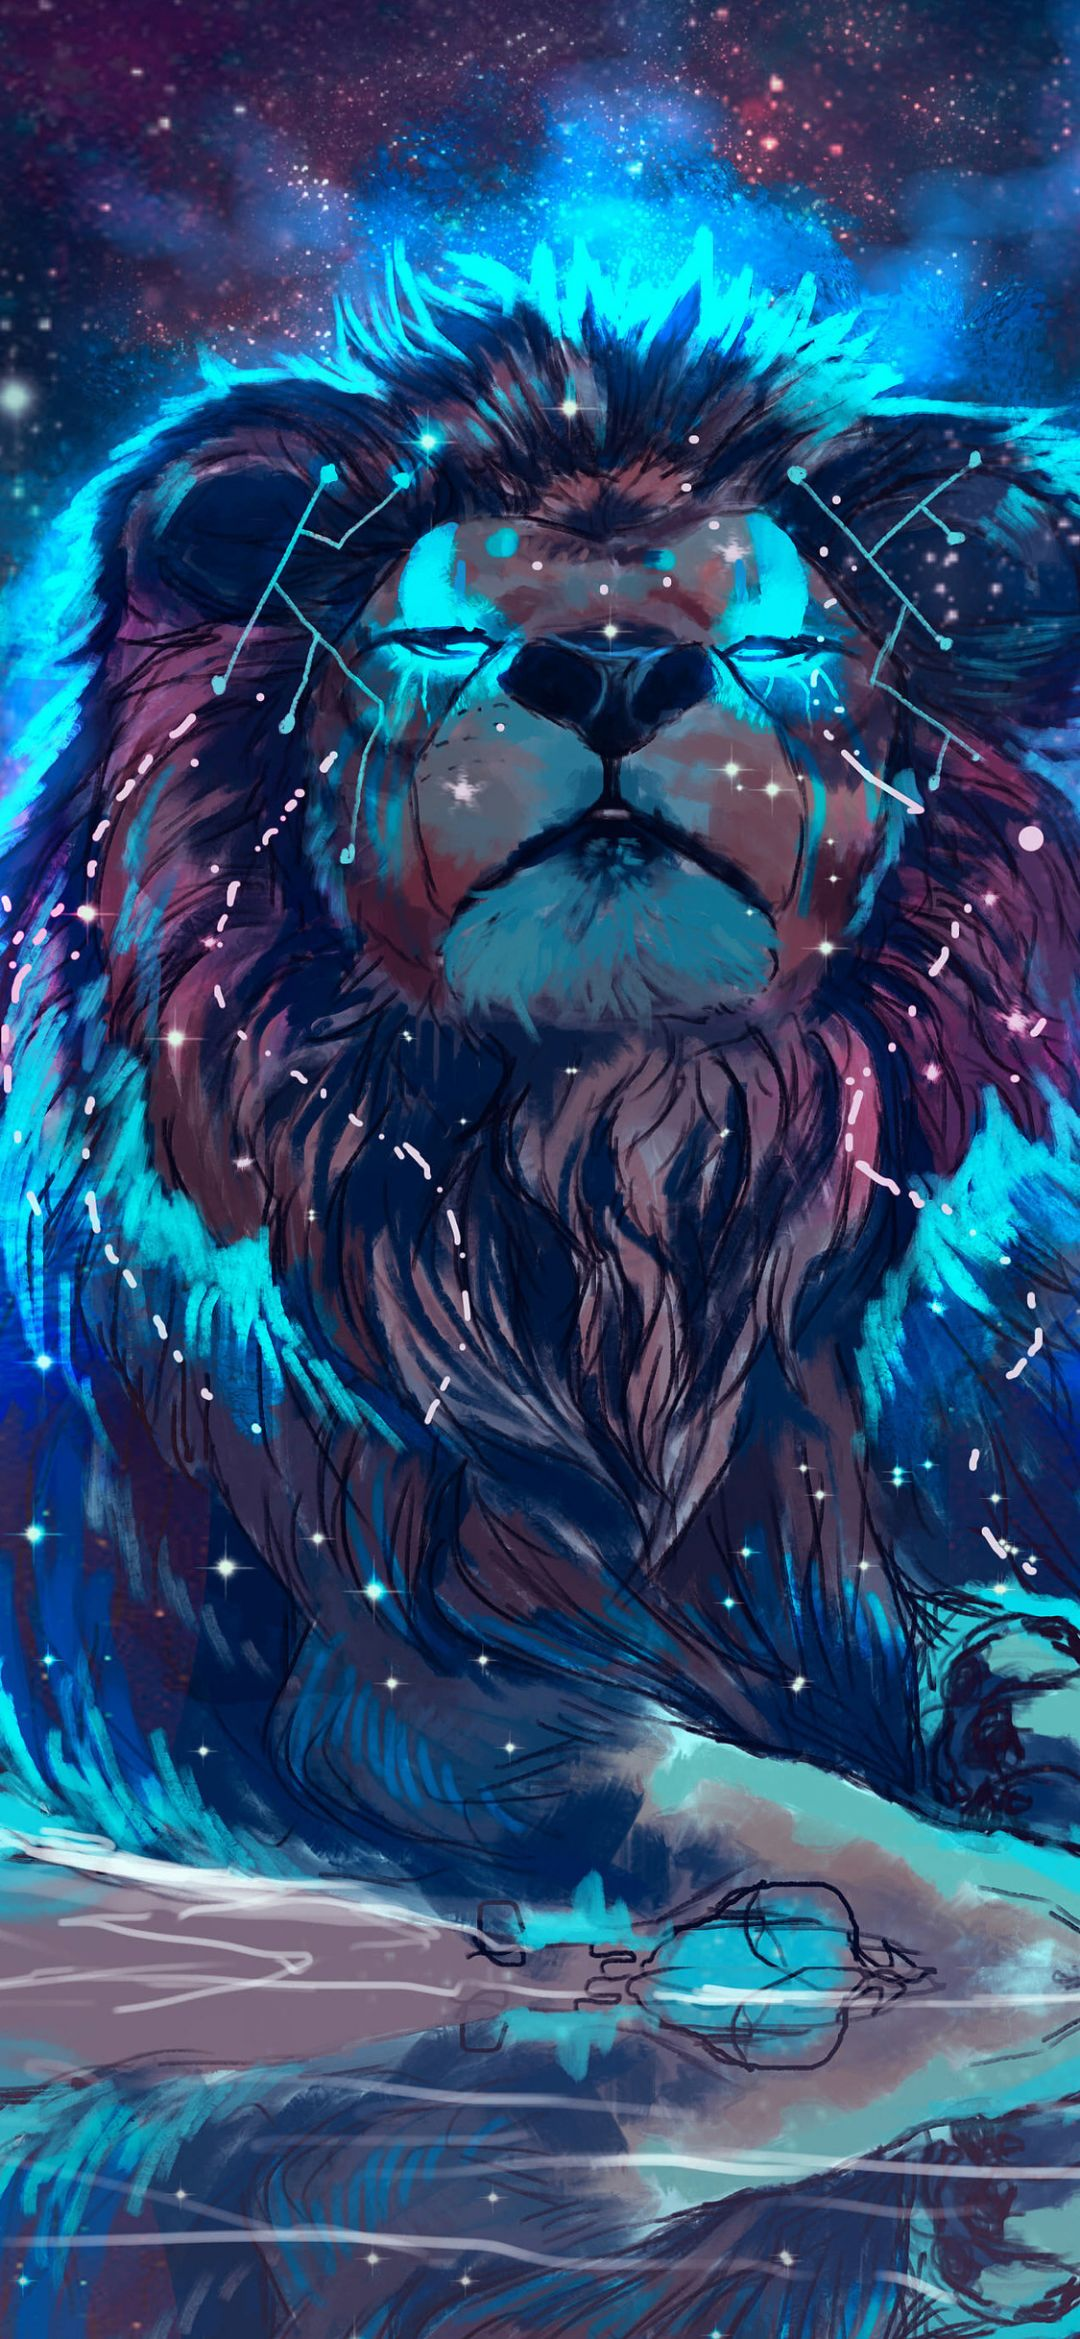 200 Lion Iphone Android Iphone Desktop Hd Backgrounds Wallpapers 1080p 4k 1125x2436 2020